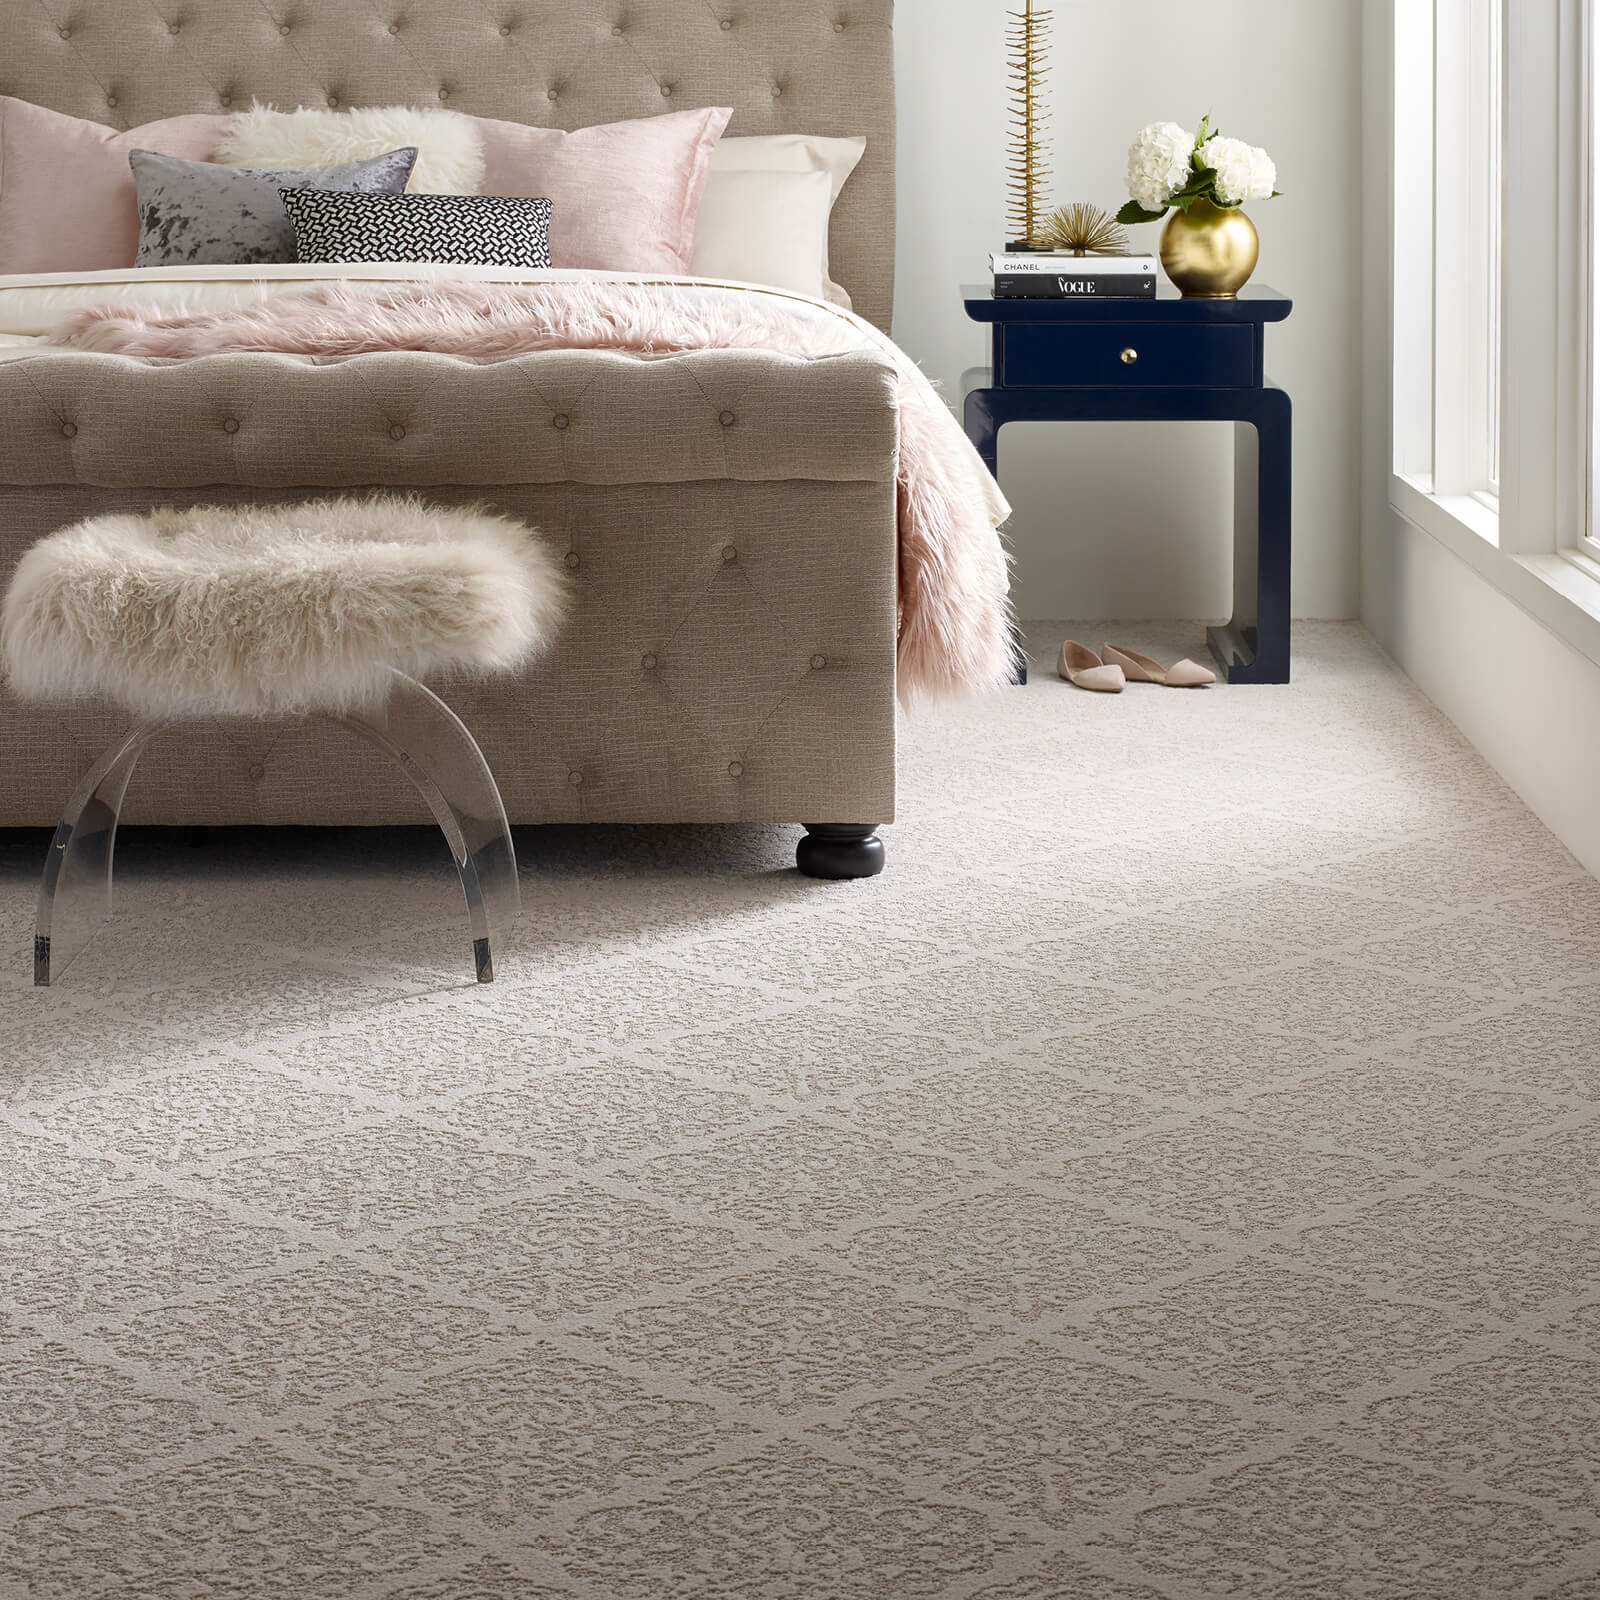 Carpet design | Floorida Floors